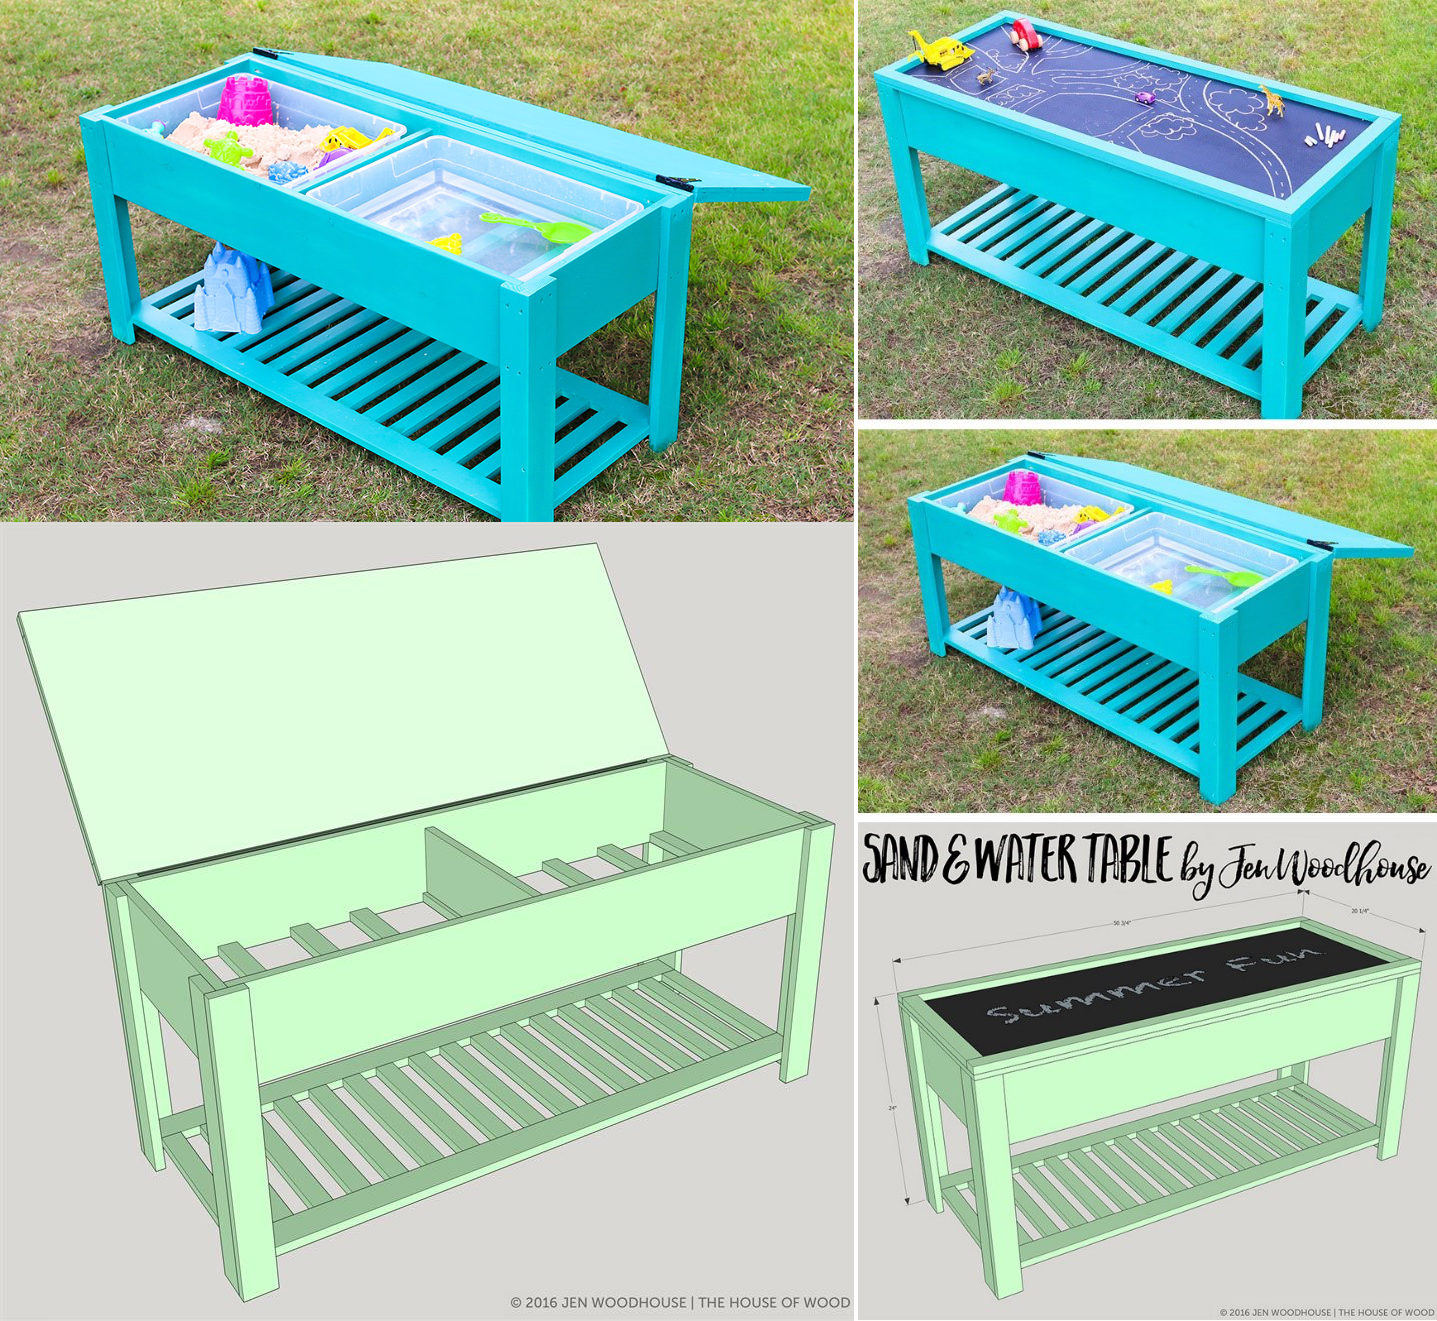 1.SIMPHOME.COM 10 DIY Outdoor Wood Projects Sand and Water Play Table